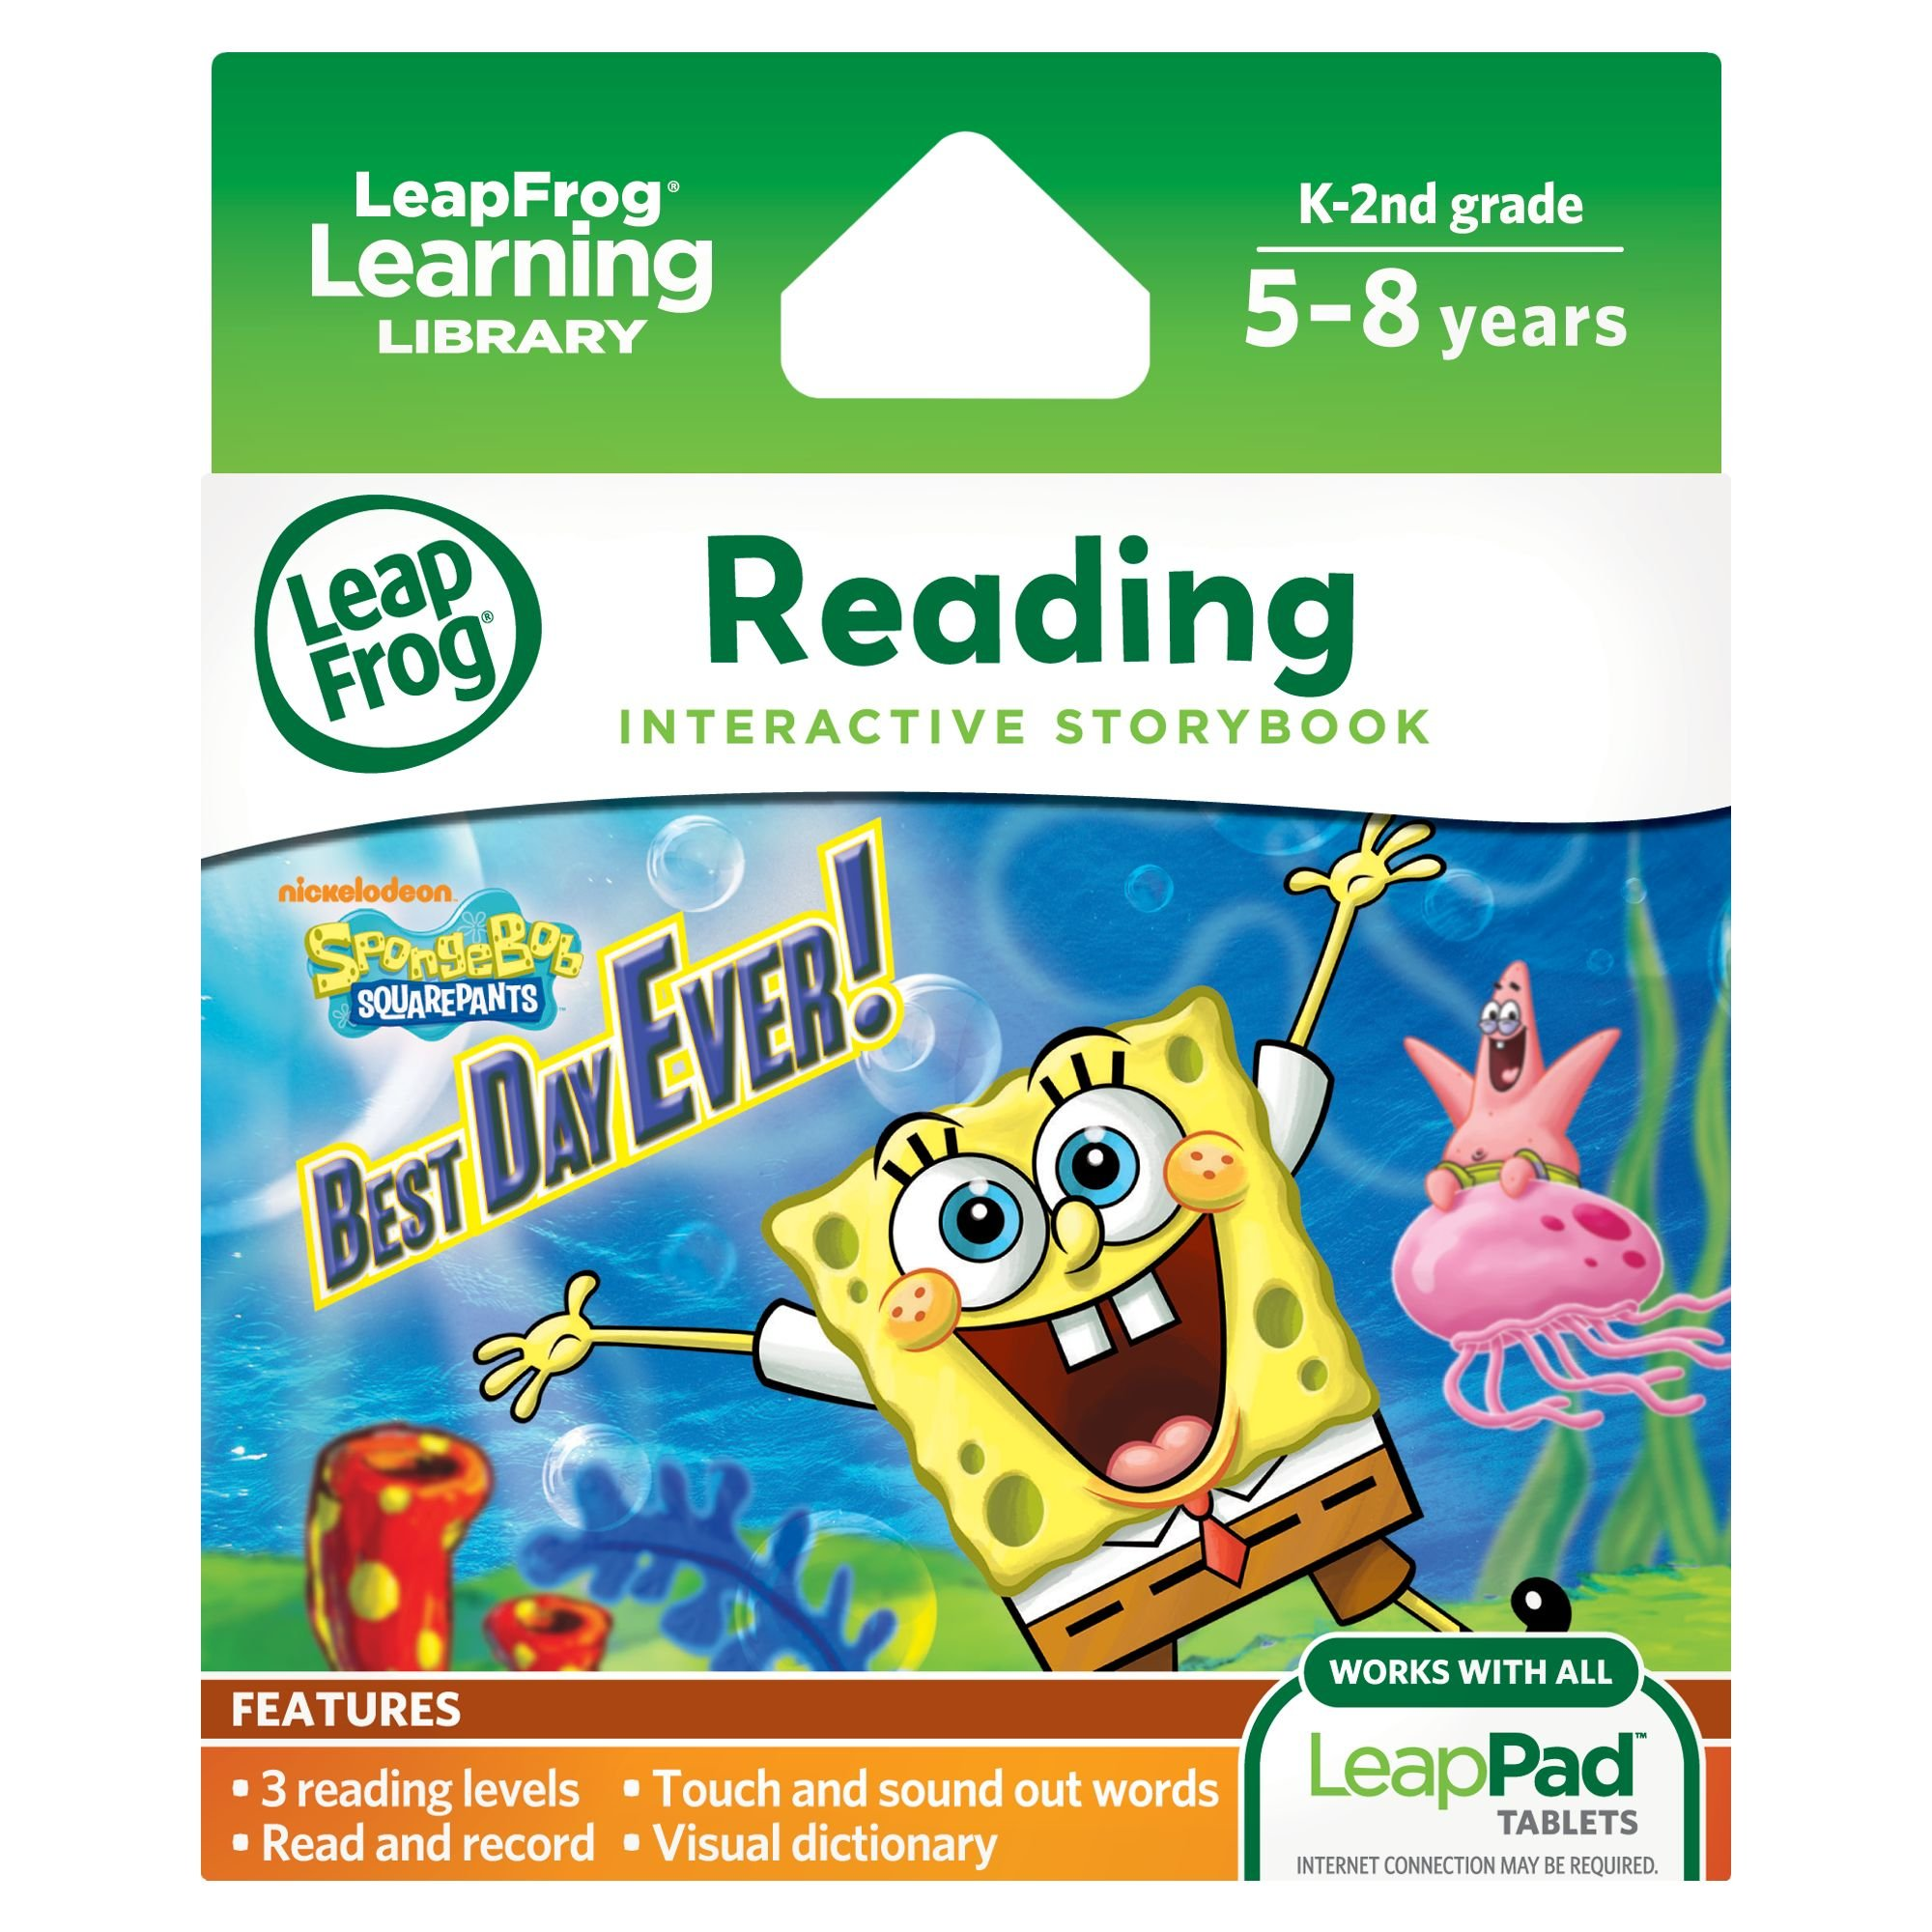 LeapFrog LeapPad Ultra eBook: SpongeBob SquarePants Best Day Ever! (works with all LeapPad tablets) by LeapFrog